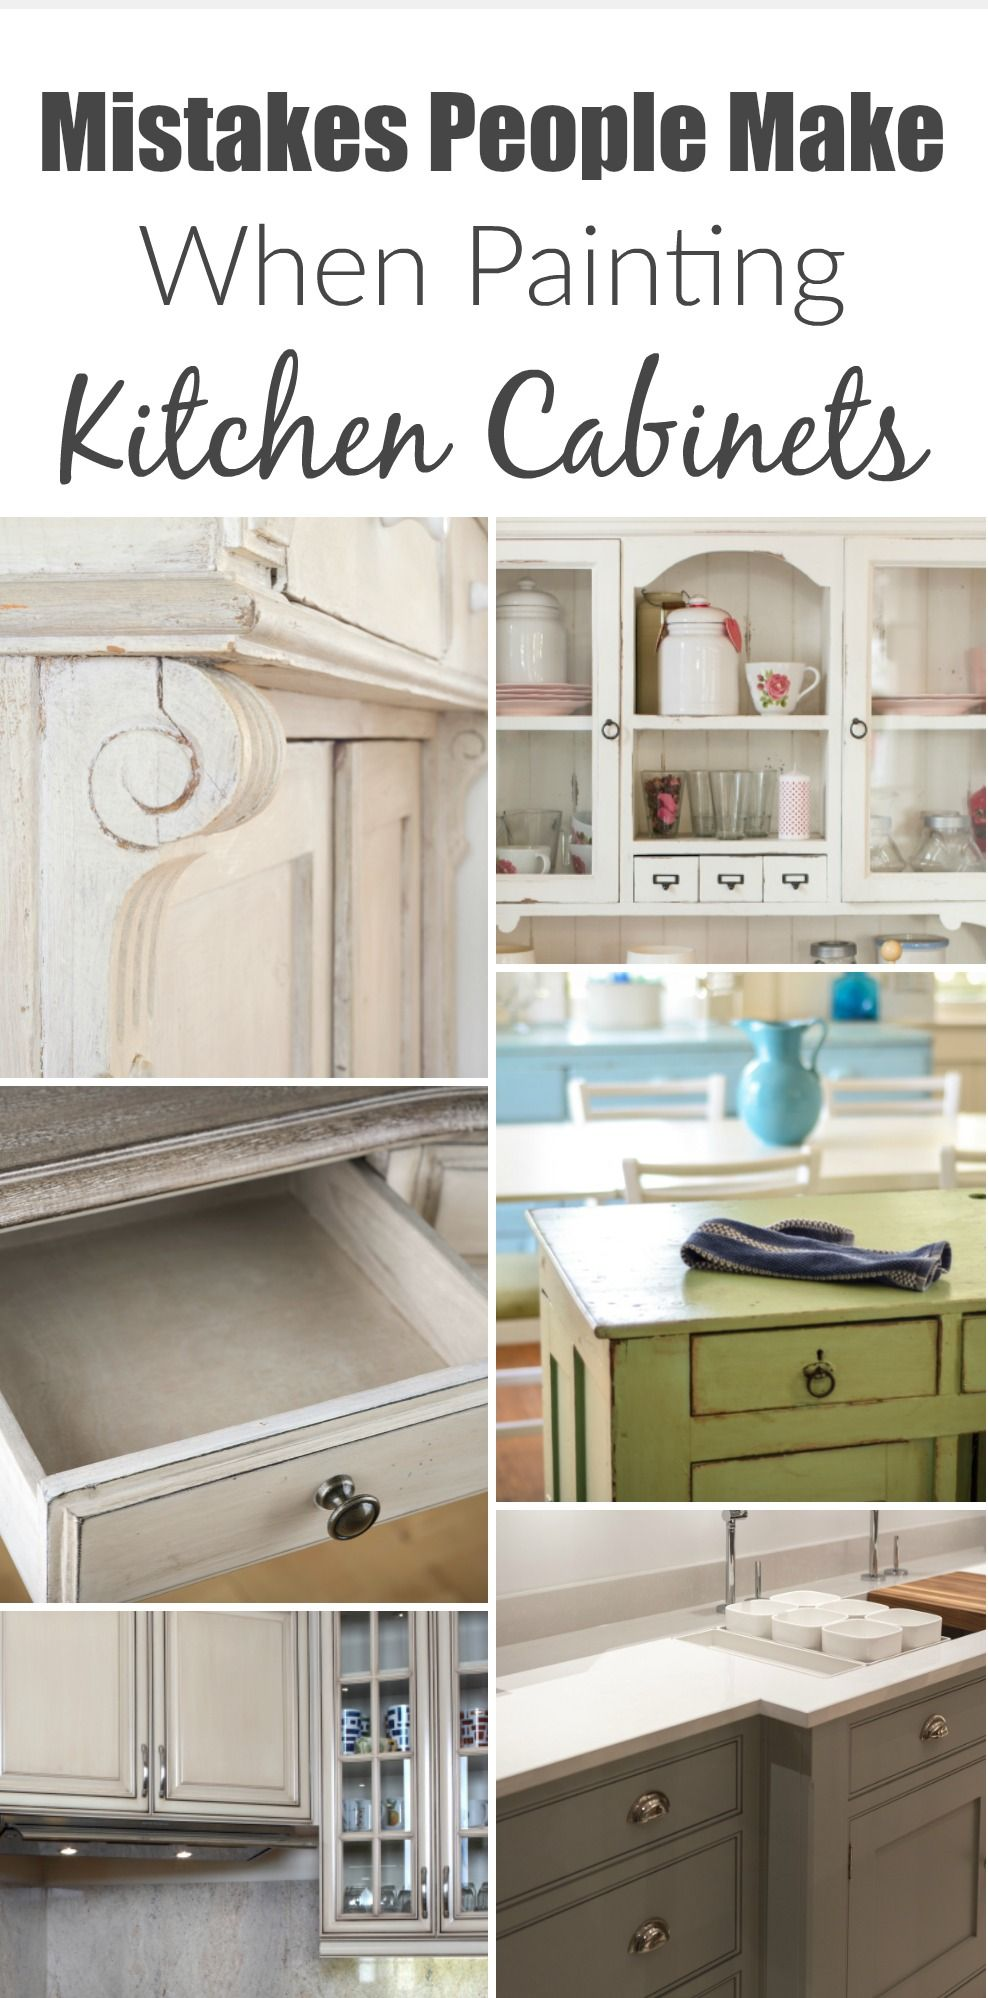 5 Mistakes People Make When Painting Kitchen Cabinets Painted Furniture Ideas Painting Kitchen Cabinets Home Cabinet